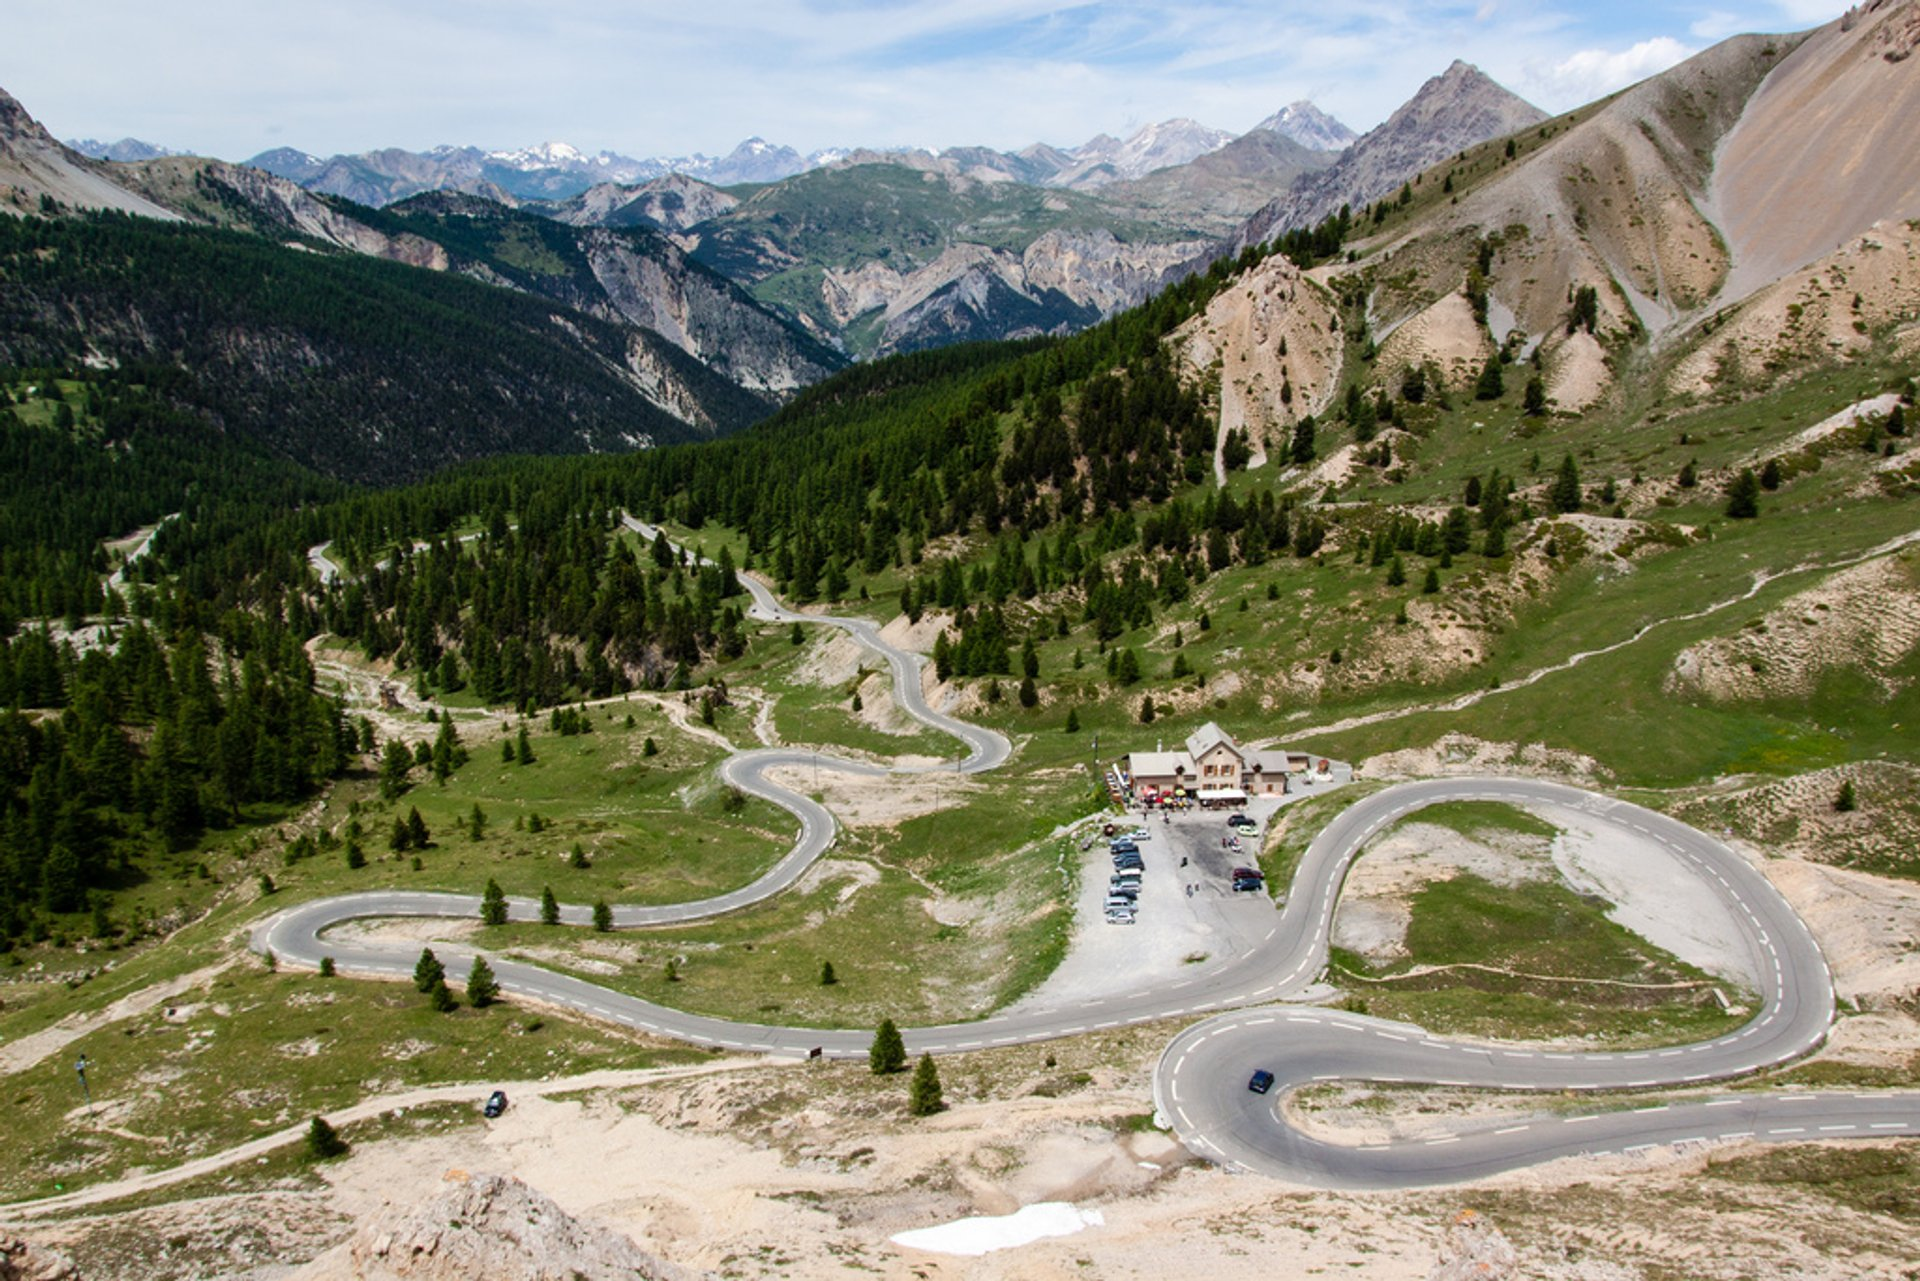 Col d'Izoard in France 2020 - Best Time